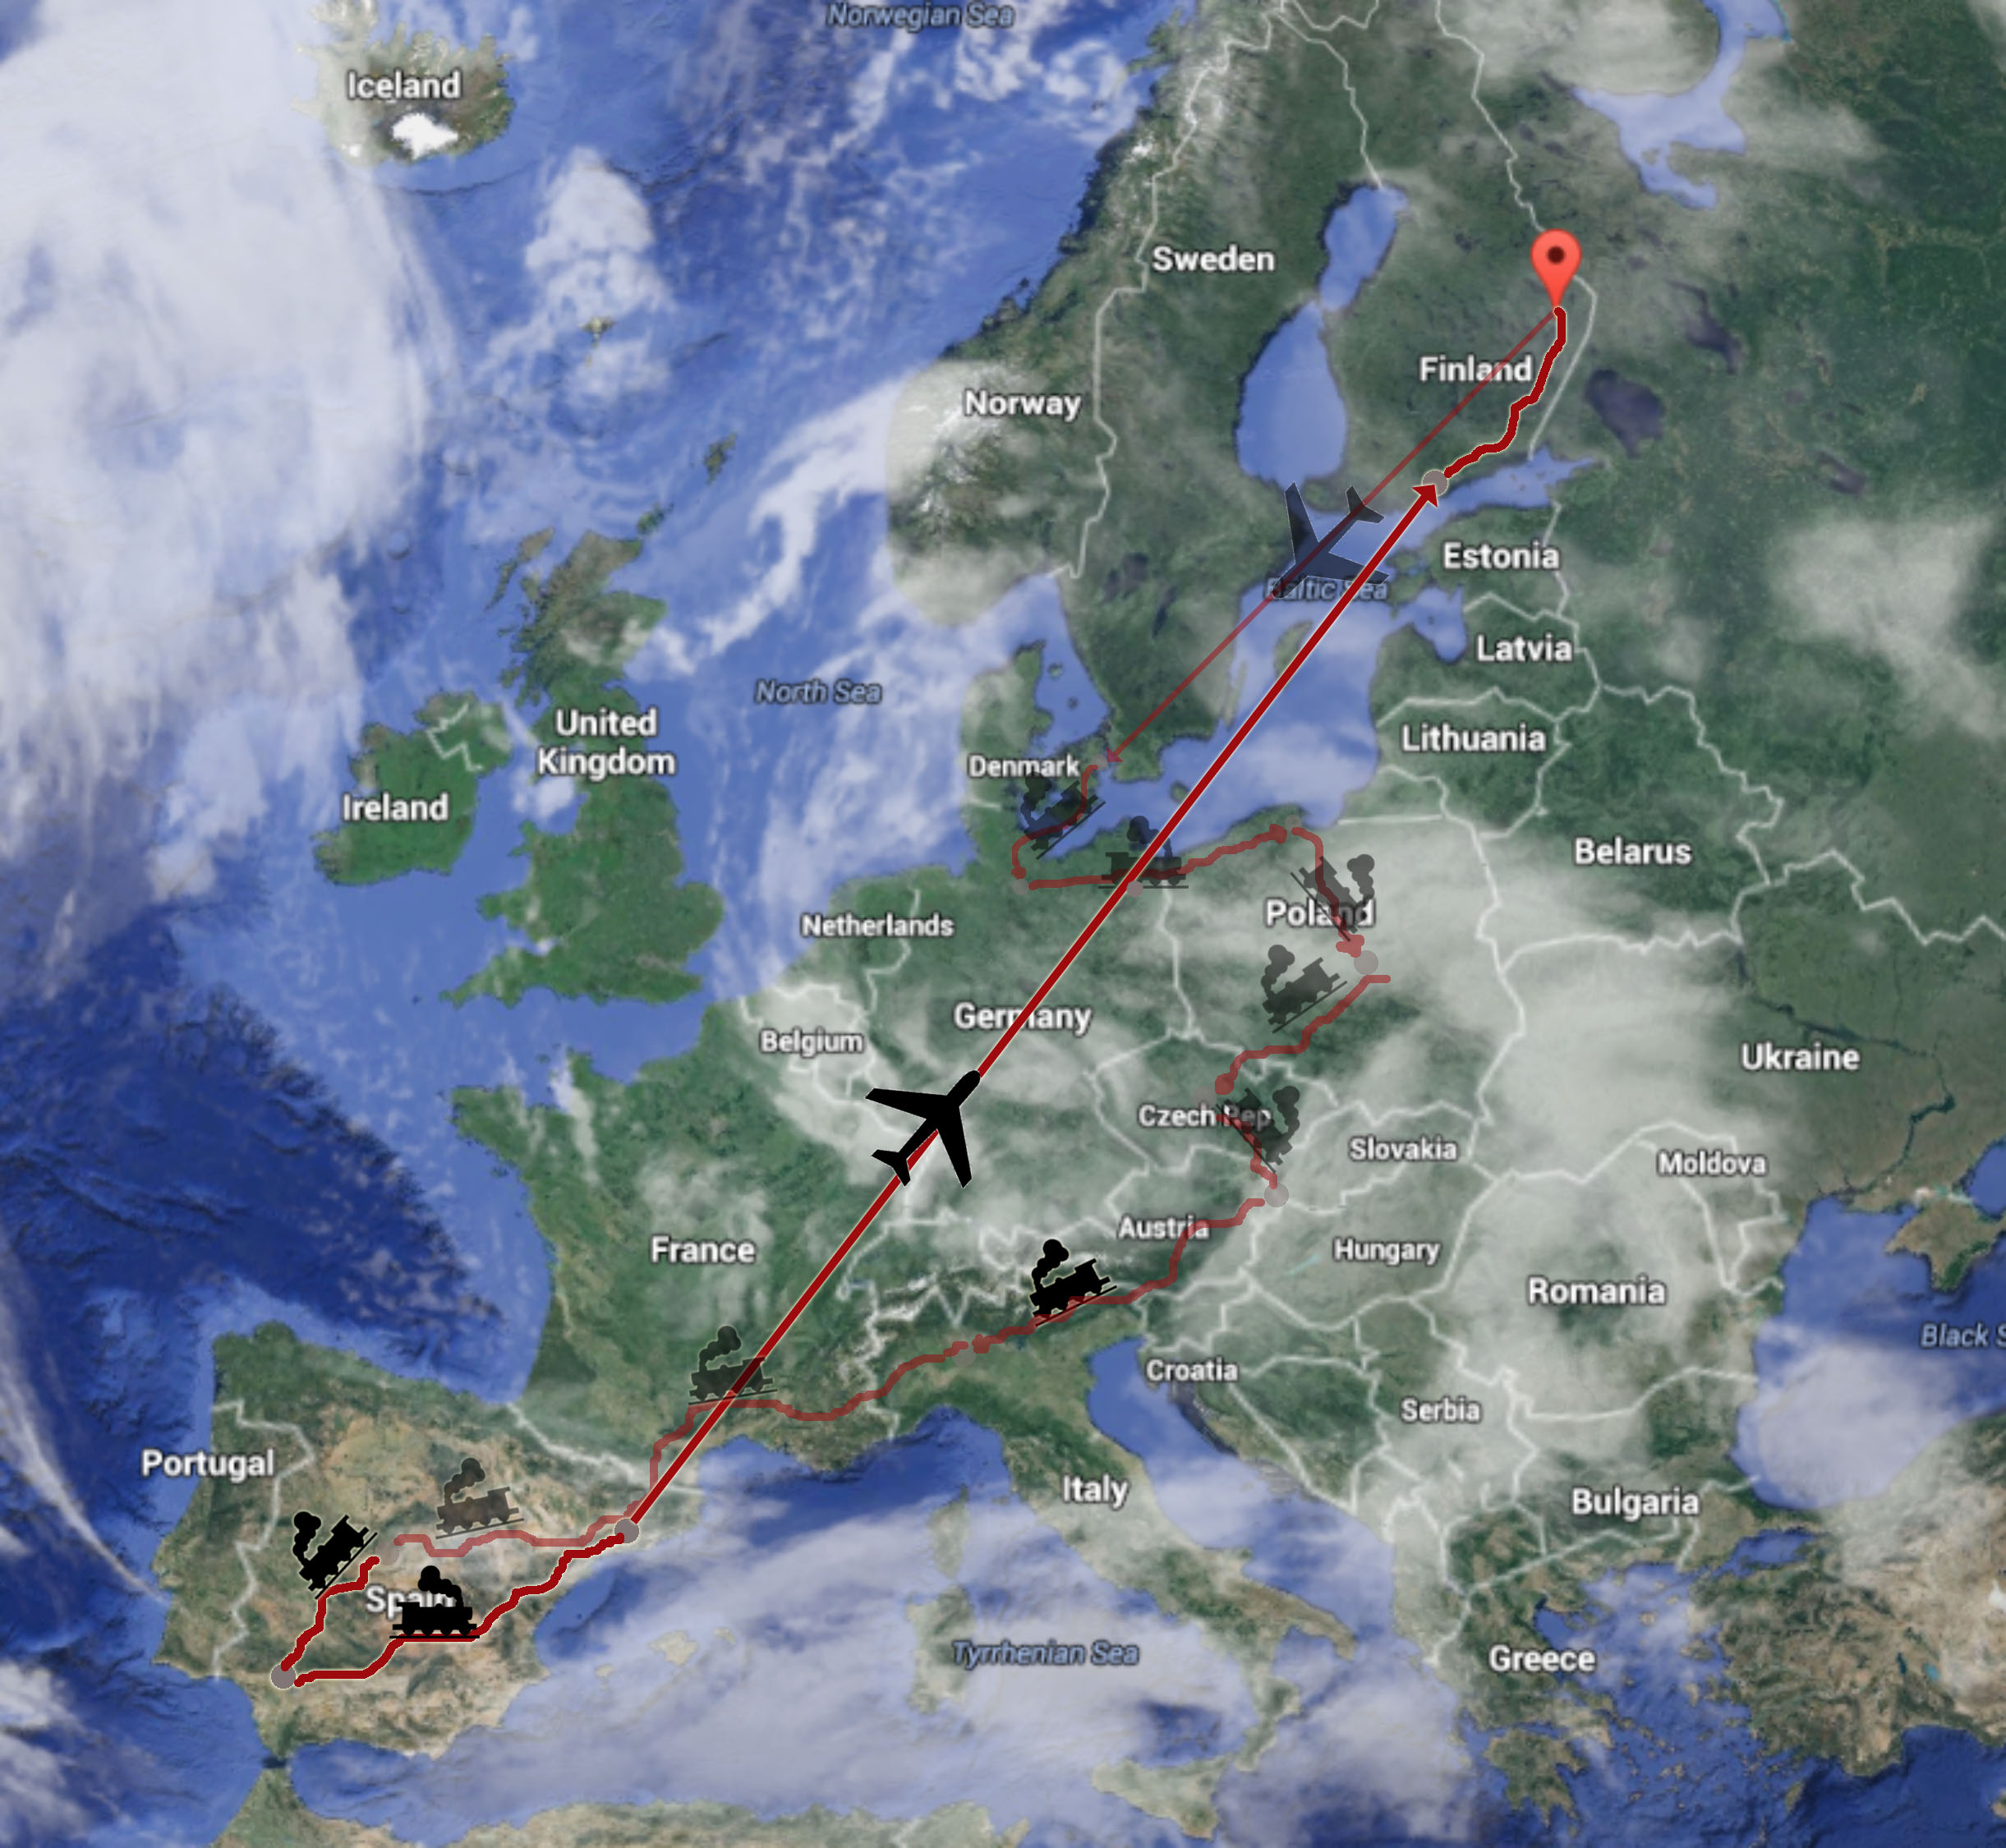 travelling in europe Ask expats and frequent travelers when they enjoying traveling the most, and you will undoubtedly hear september mentioned time and time again the majority of the perks lie in the mild yet warm weather, continually thinning tourists, and price drops across transportation, hotels, and activities.